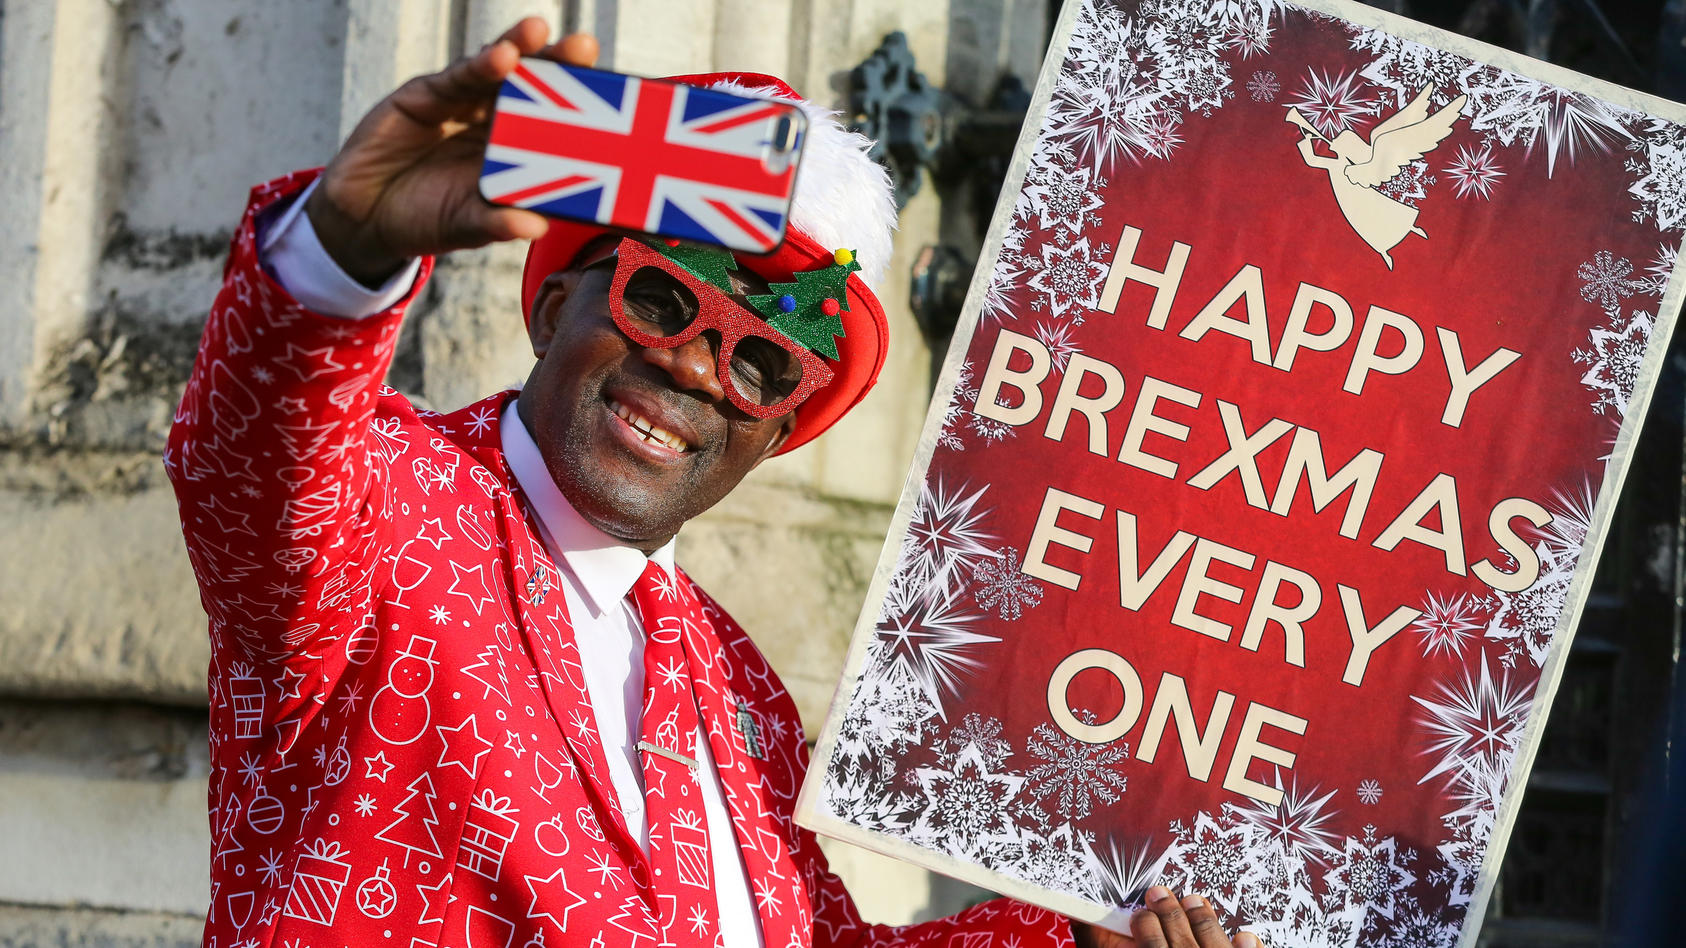 December 18, 2019, London, UK, UK: London, UK. A Pro-Brexit supporter takes a selfie while holding a HAPPY BREXMAS EVERY